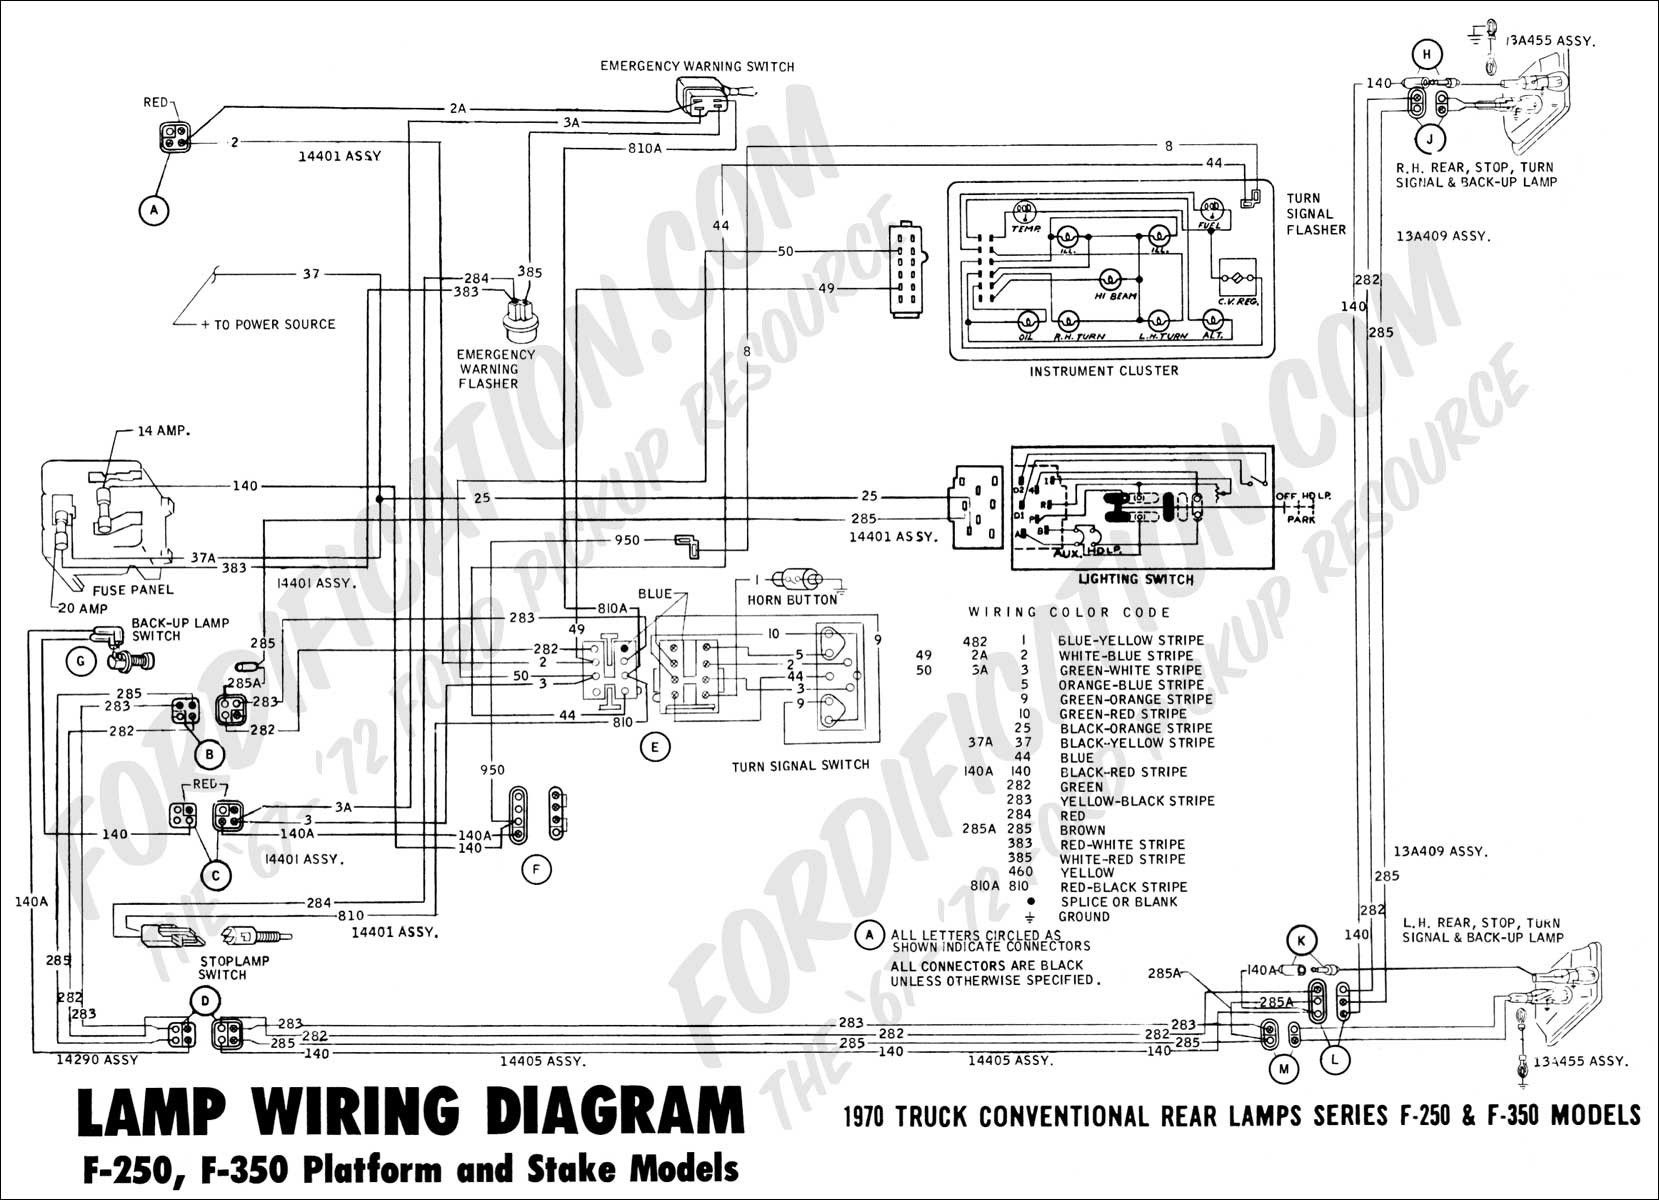 attractive 2001 f250 wiring diagram image collection